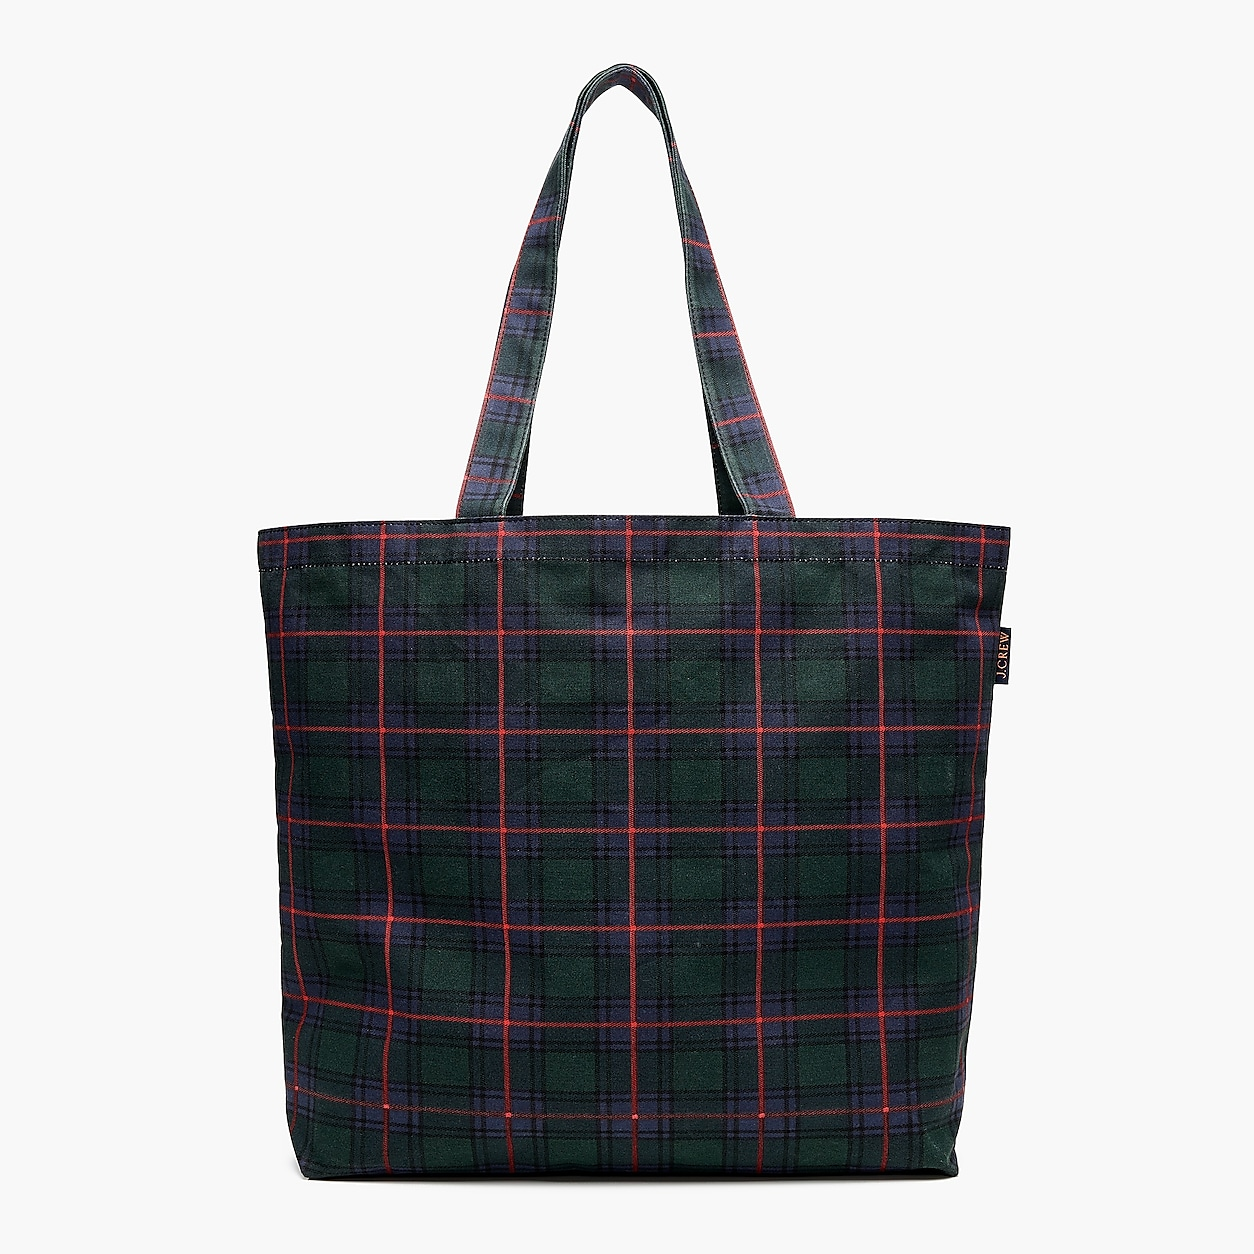 00999f9ecb Large Reusable Everyday Tote In Black Watch Plaid